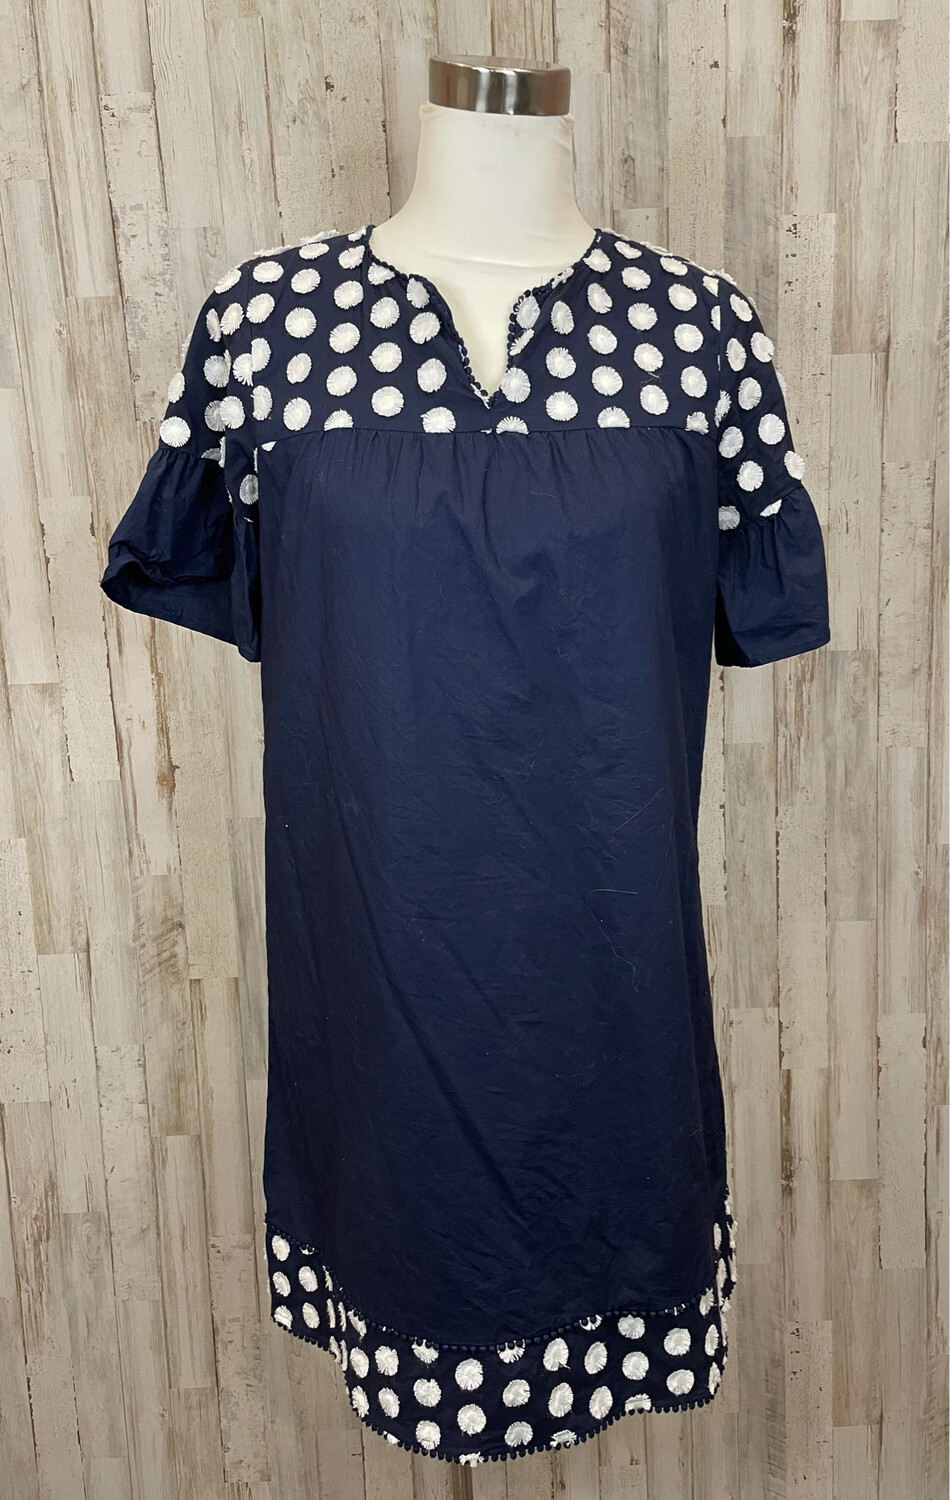 J. Crew Navy & White Embroidered Dress - Size 6